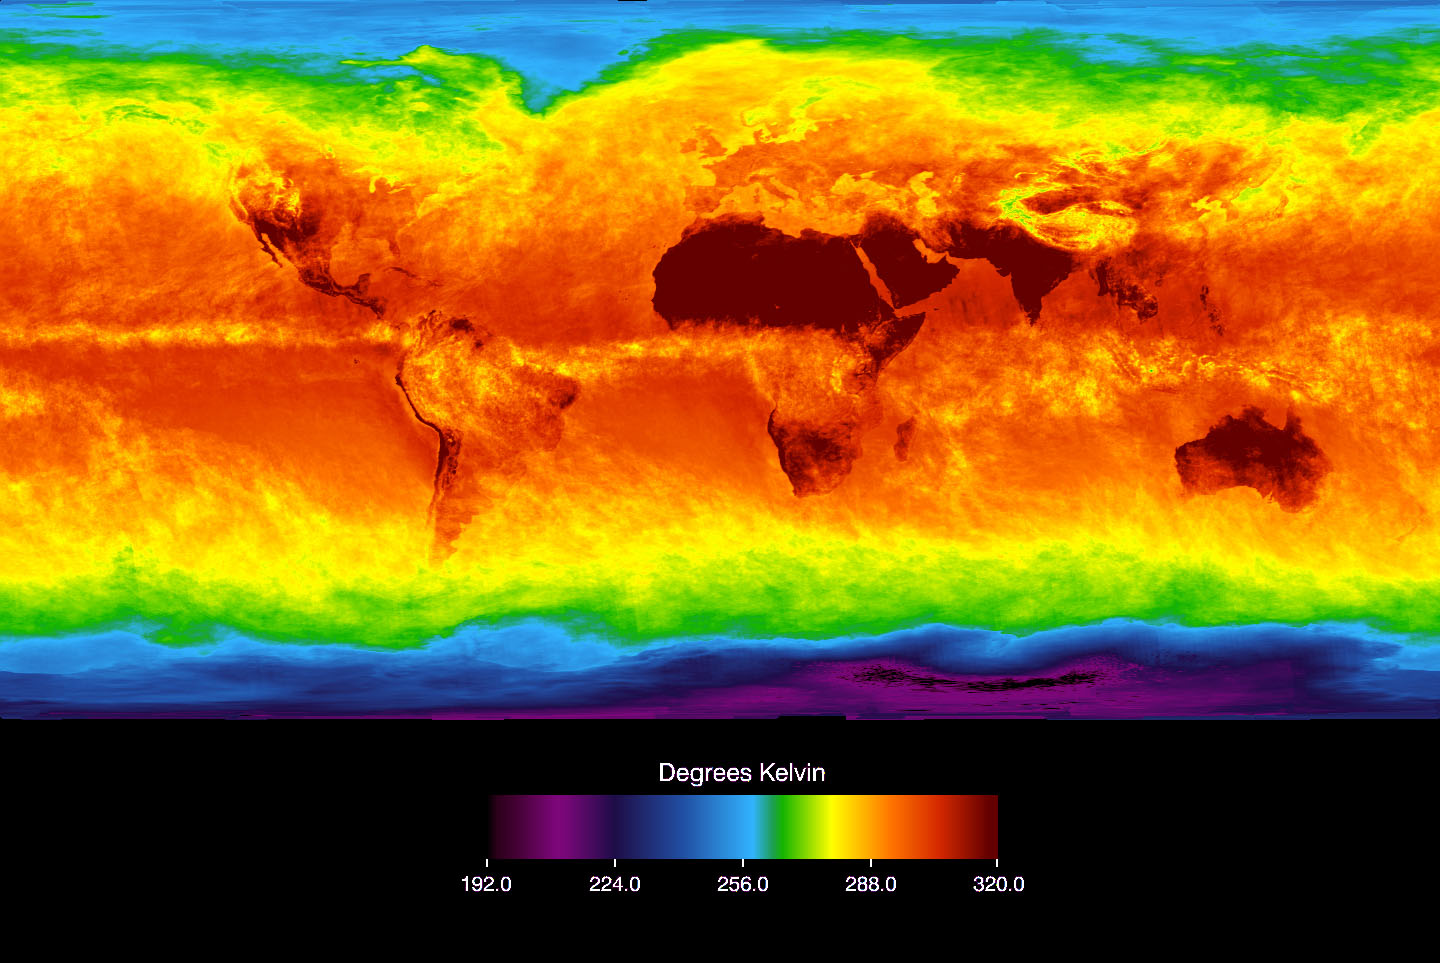 The Atmospheric Infrared Sounder (AIRS) instrument aboard NASA's Aqua satellite senses temperature using infrared wavelengths. This image shows temperature of the Earth's surface or clouds covering it for the month of April 2003. The scale ranges from -81 degrees Celsius (-114° Fahrenheit) in black/blue to 47° C (116° F) in red. The Intertropical Convergence Zone, an equatorial region of persistent thunderstorms and high, cold clouds is depicted in yellow. Higher latitudes are increasingly obscured by clouds, though some features like the Great Lakes are apparent. Northernmost Europe and Eurasia are completely obscured by clouds, while Antarctica stands out cold and clear at the bottom of the image. Image courtesy AIRS Science Team, NASA/JPL